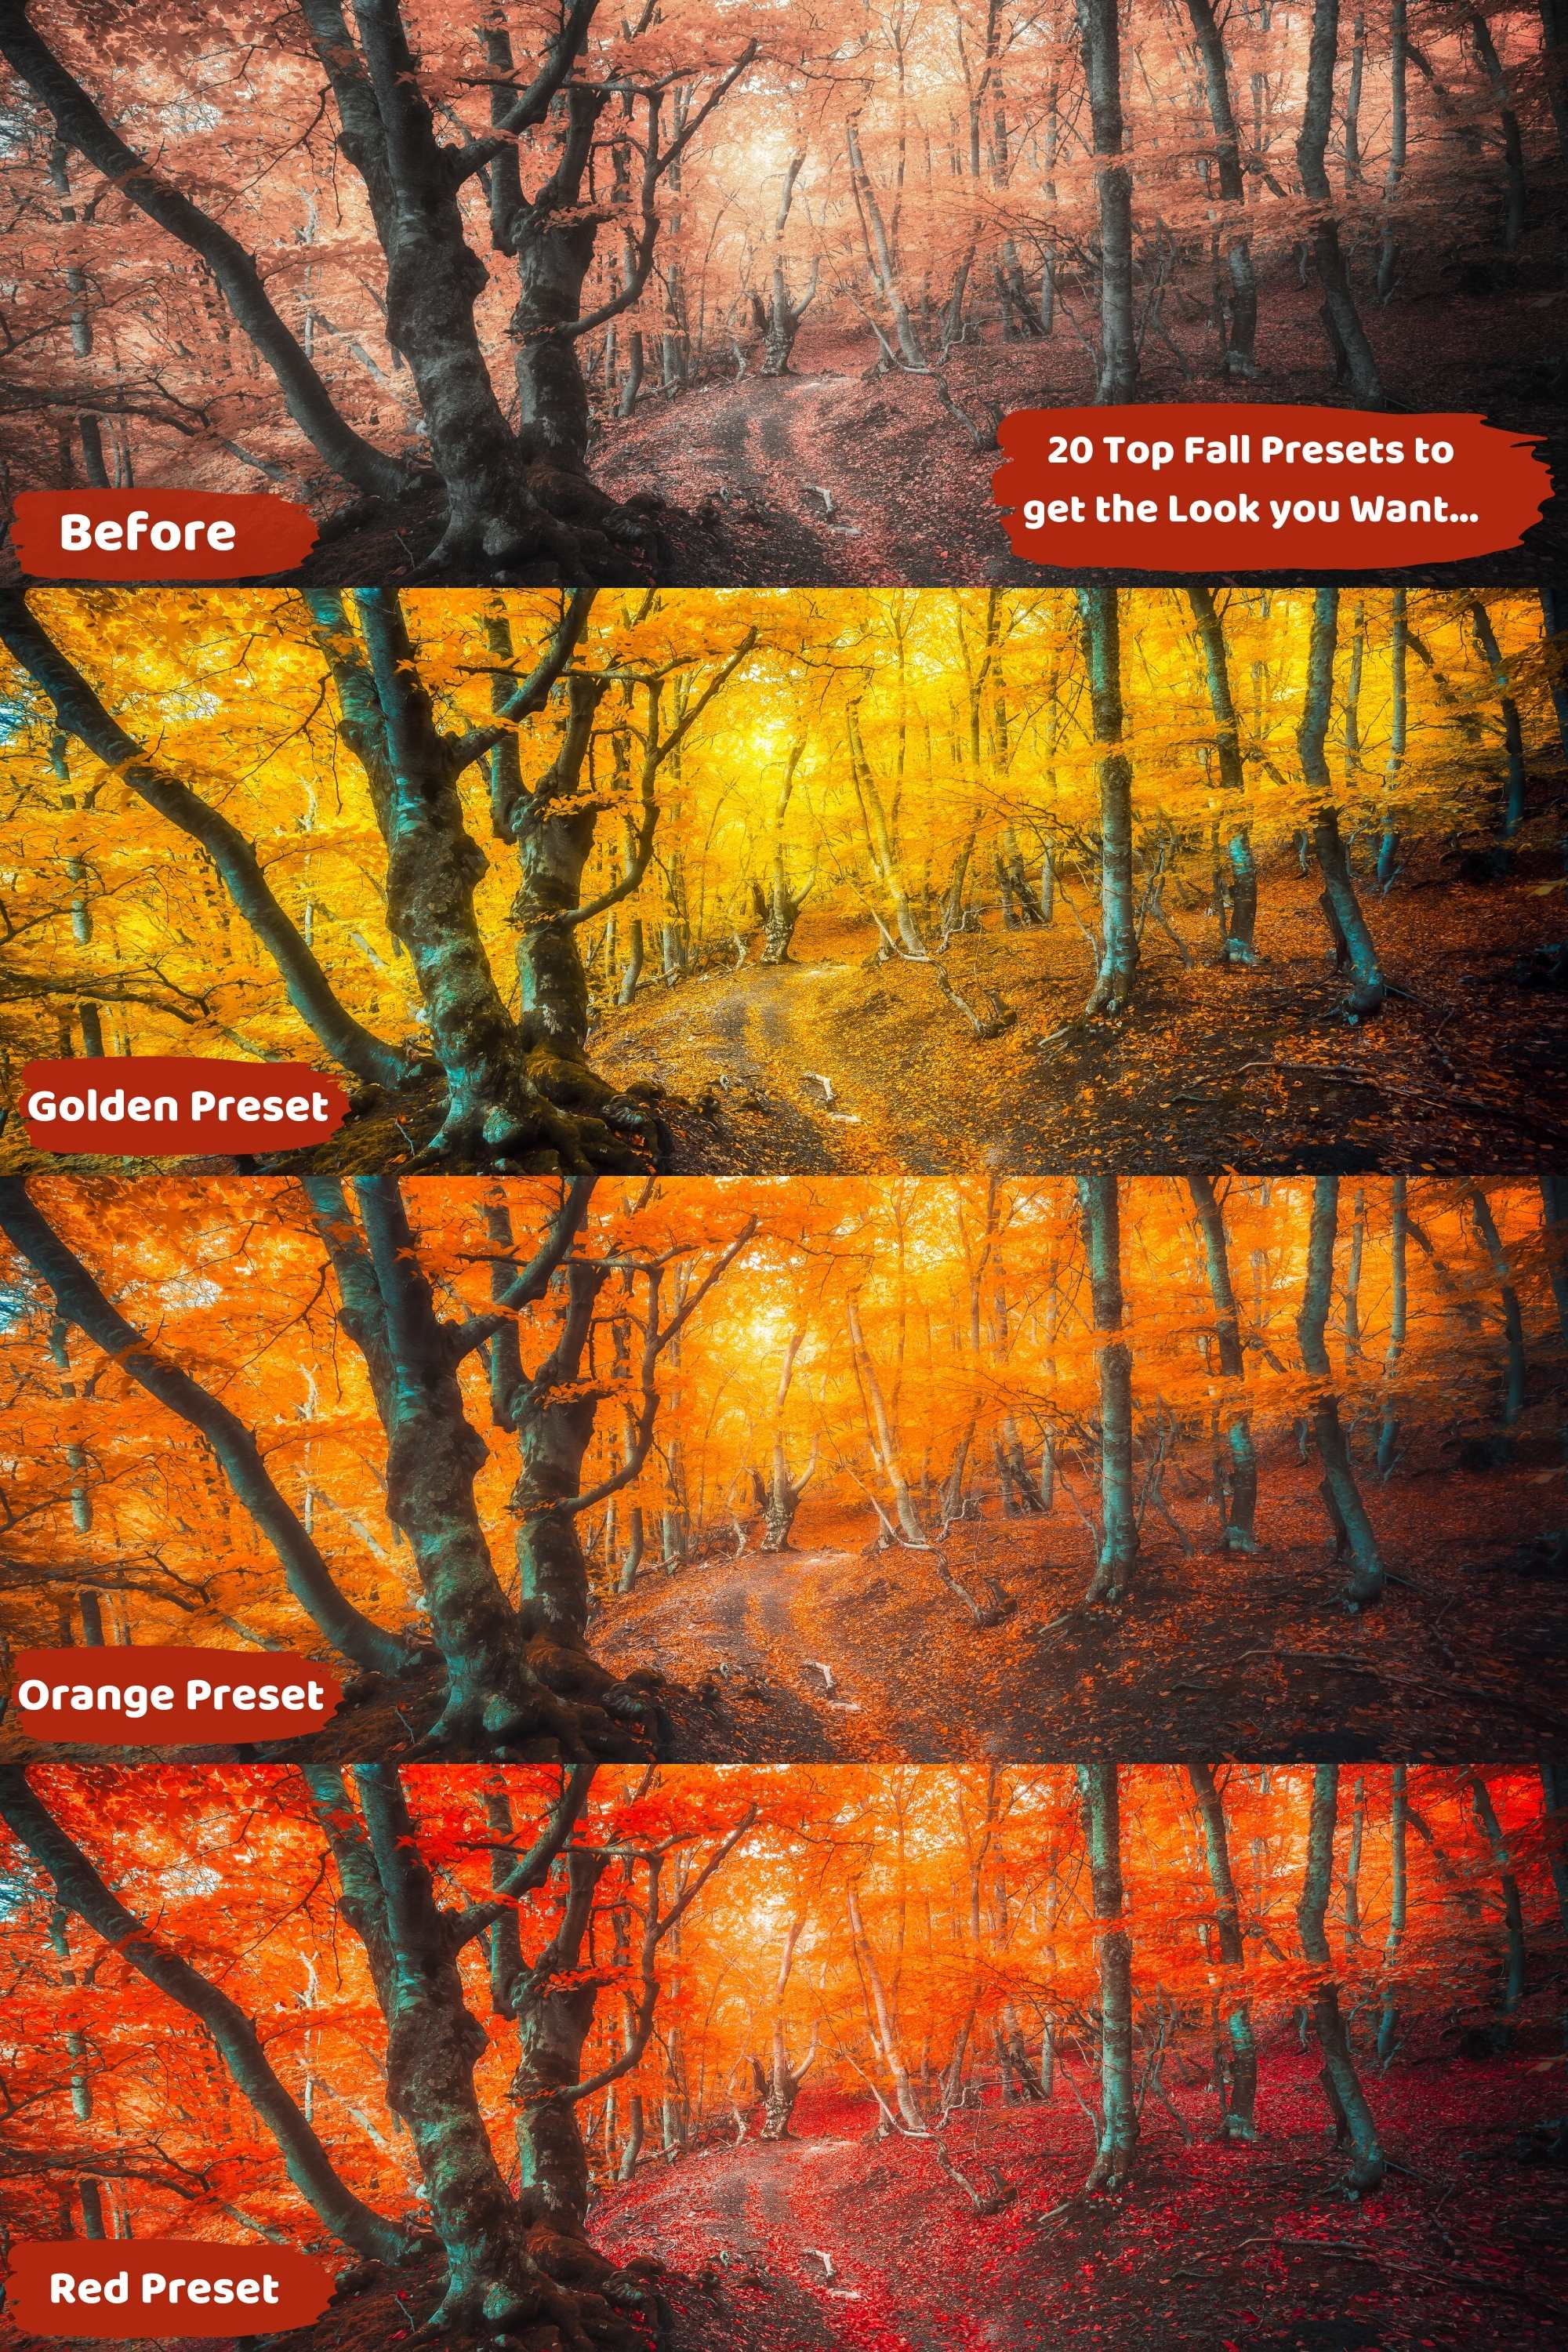 Fall Lightroom Presets Before and After Comparison